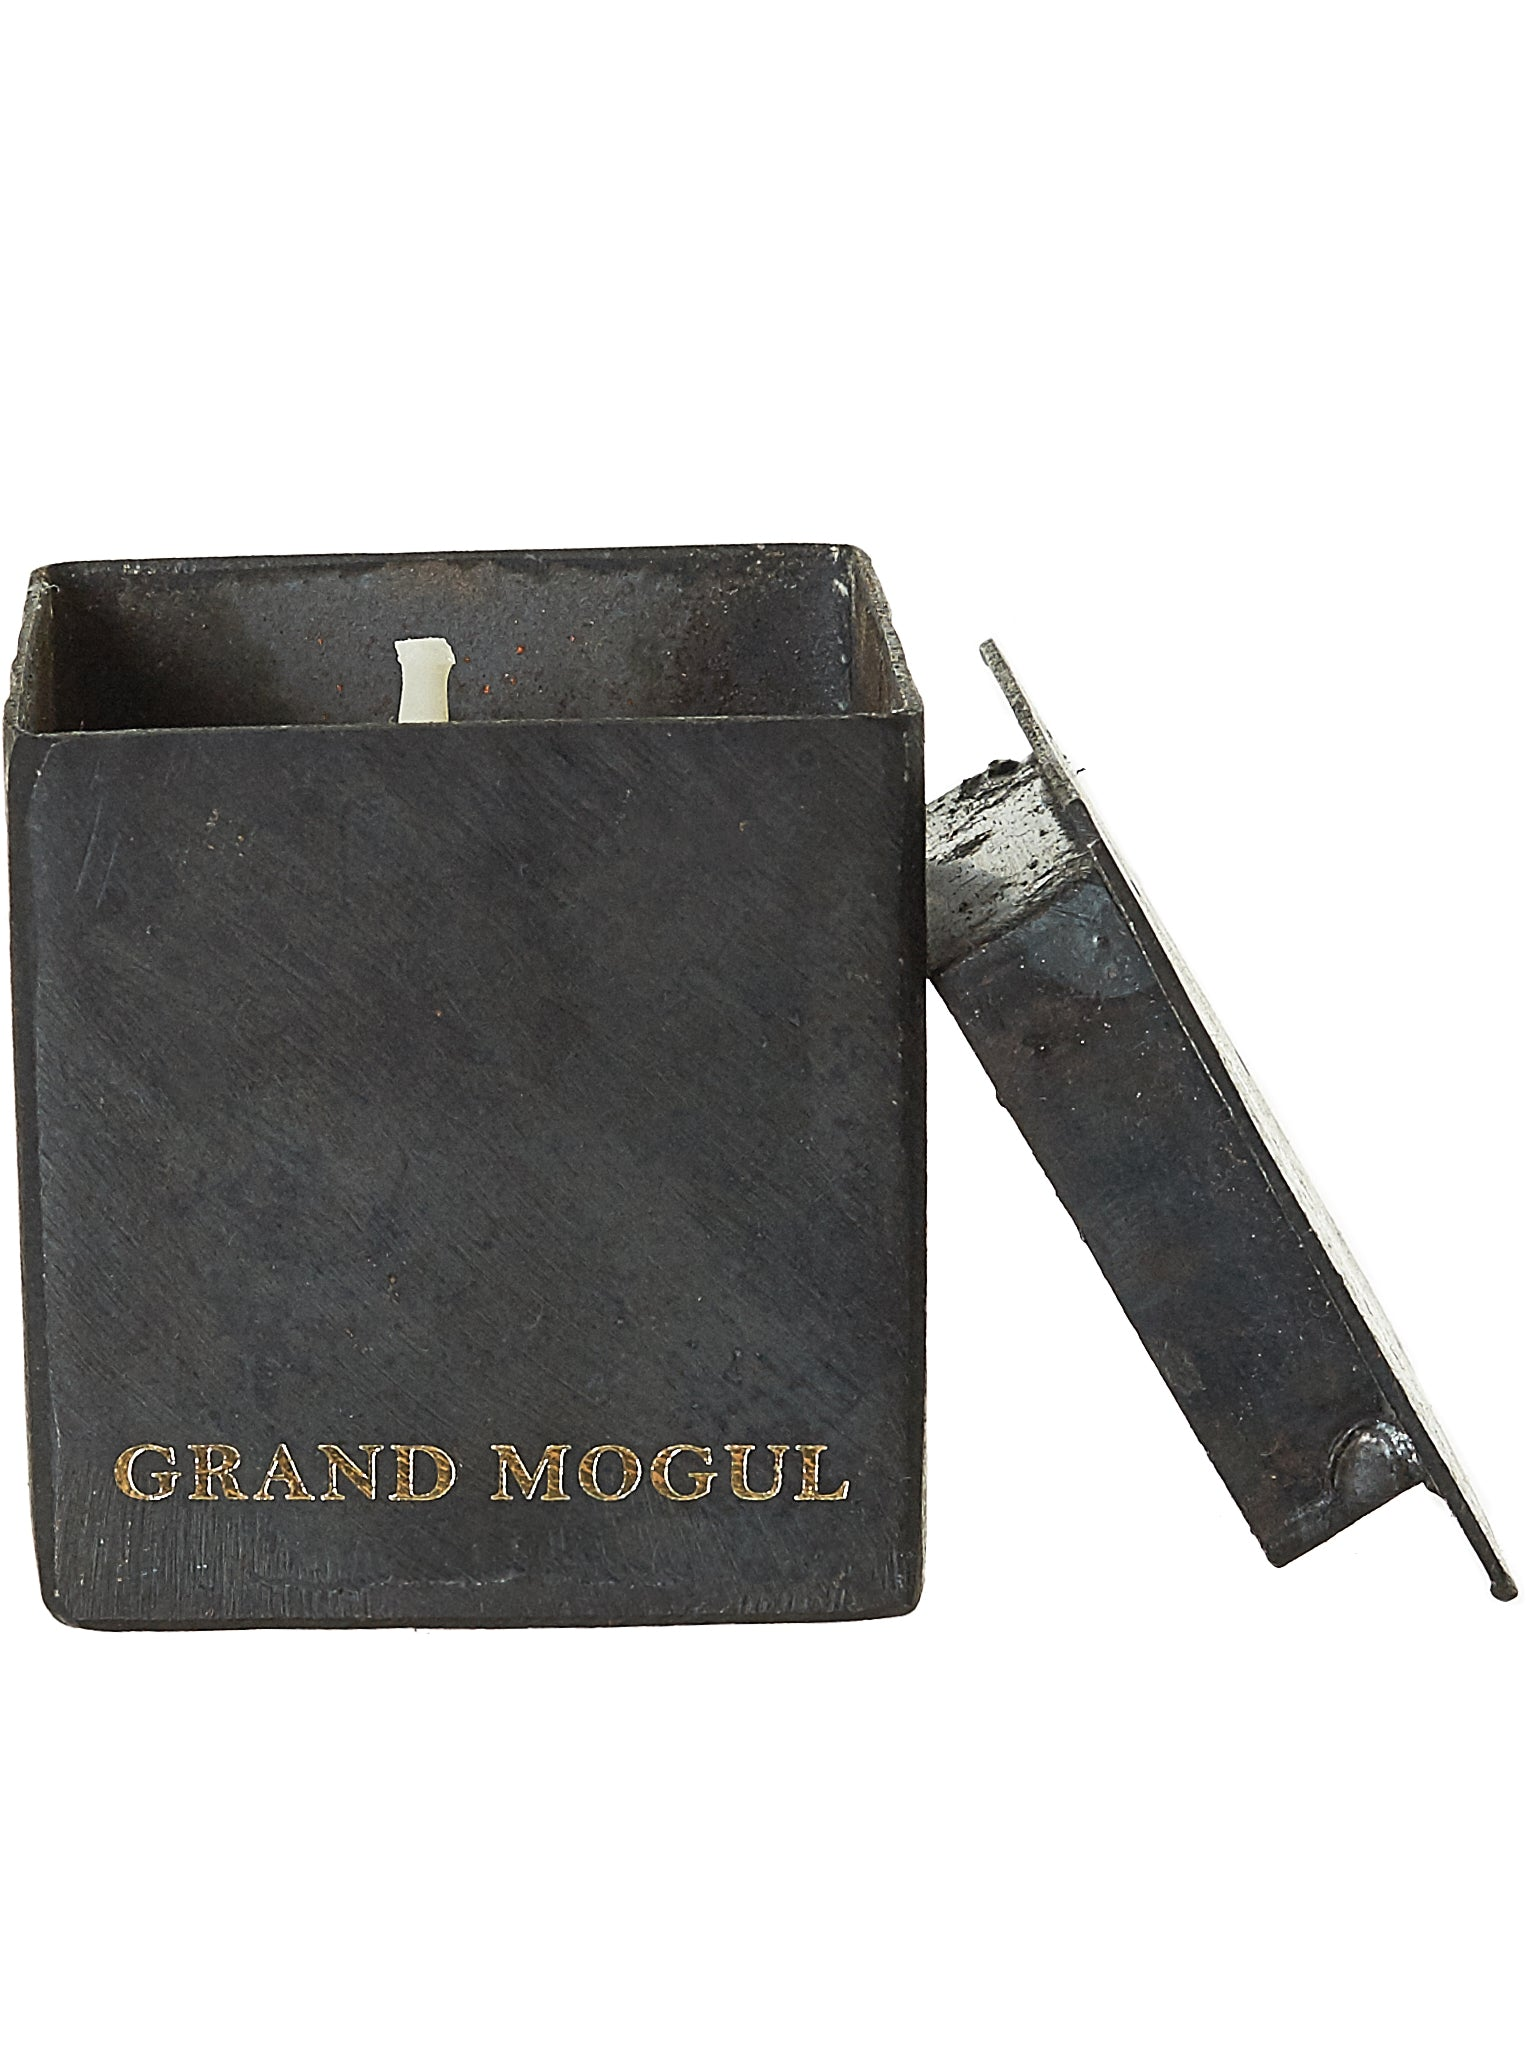 'Grand Mogul' Short Block Candle (ML-BCMN-MG-MOGUL-5X5)